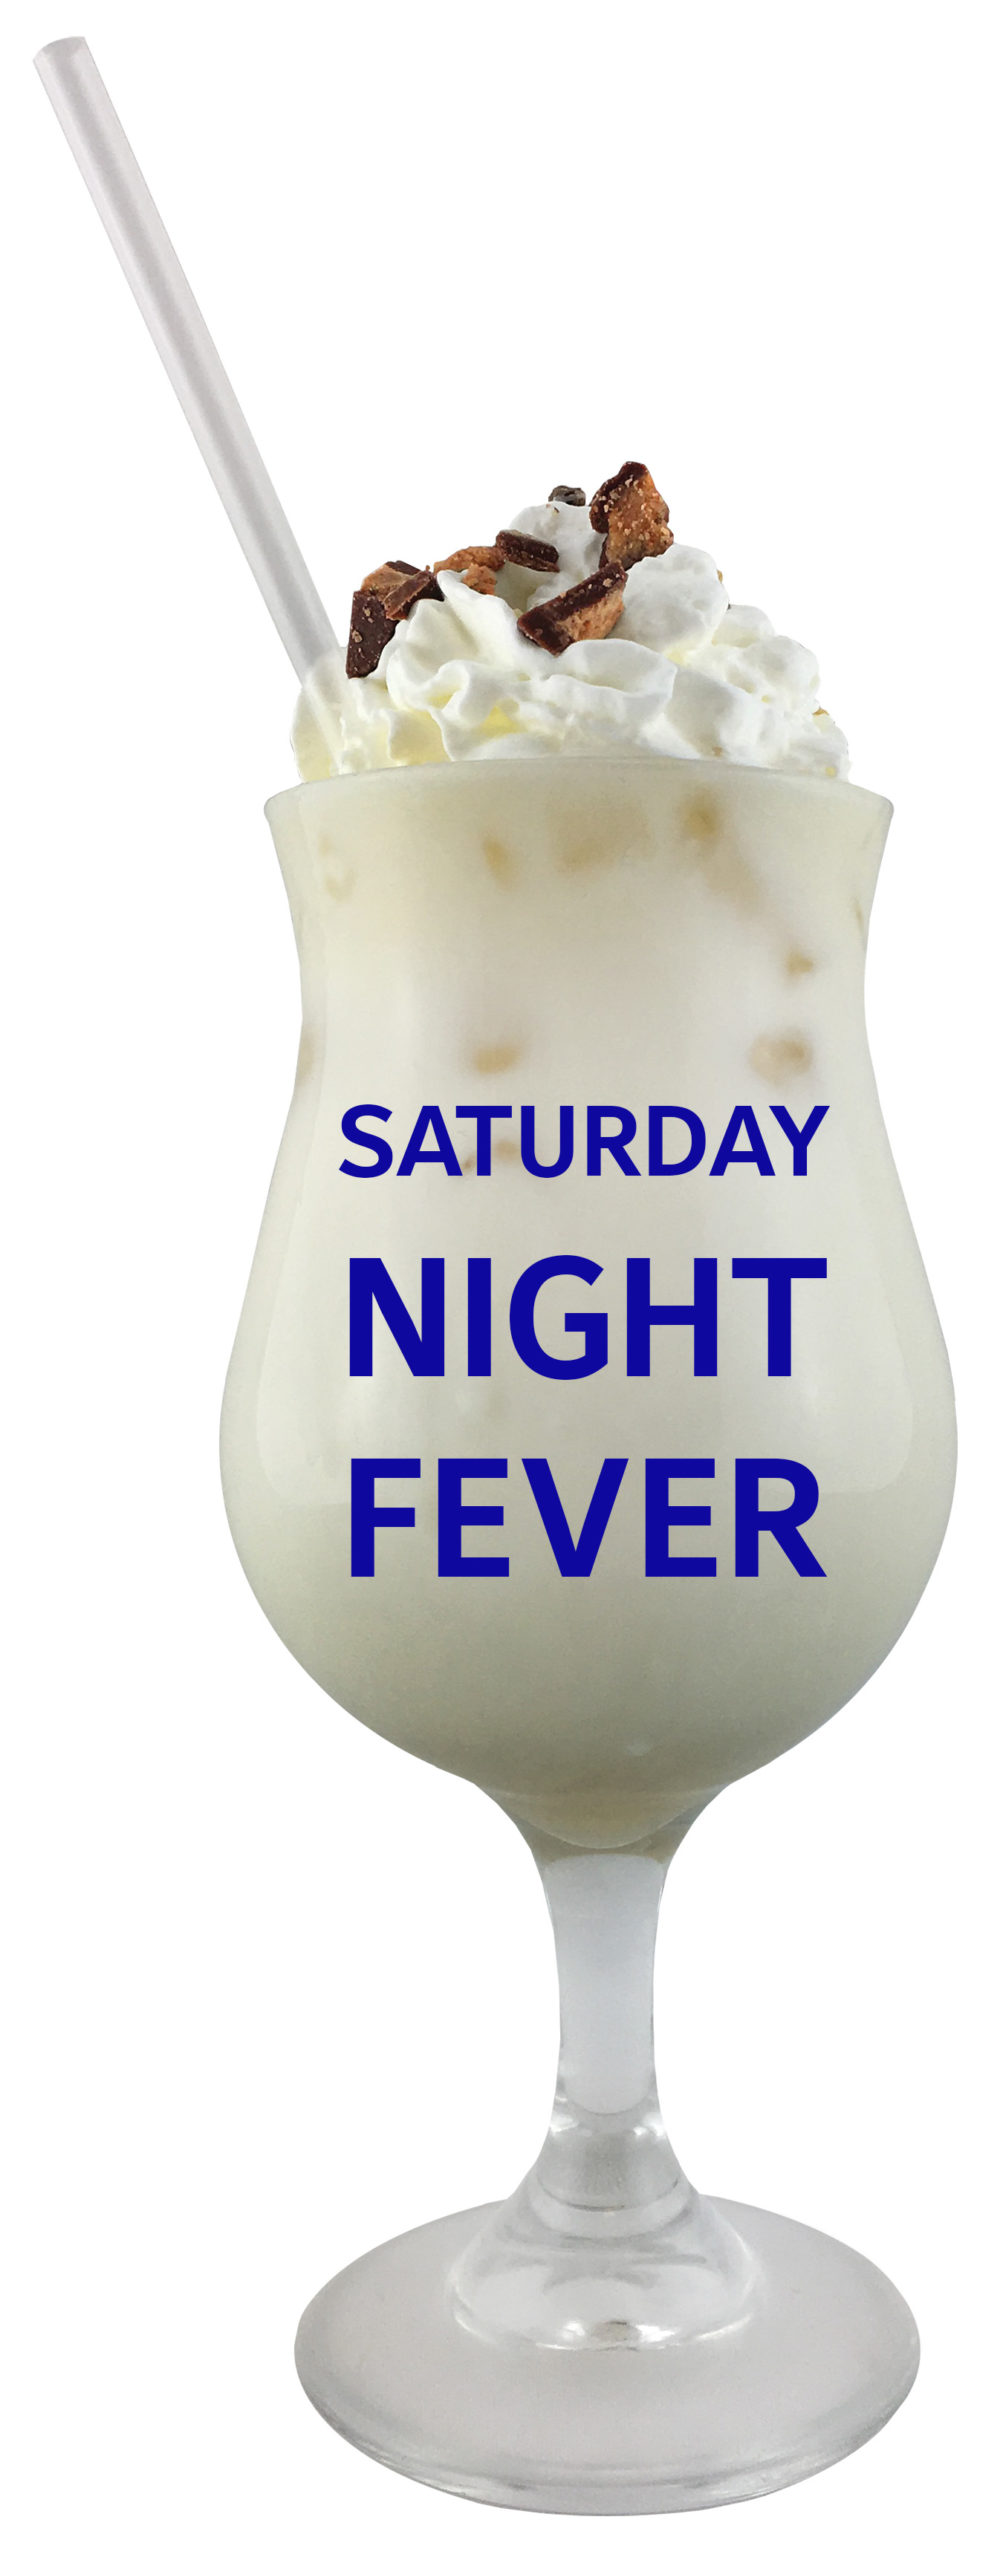 Show Special - Saturday Night Fever